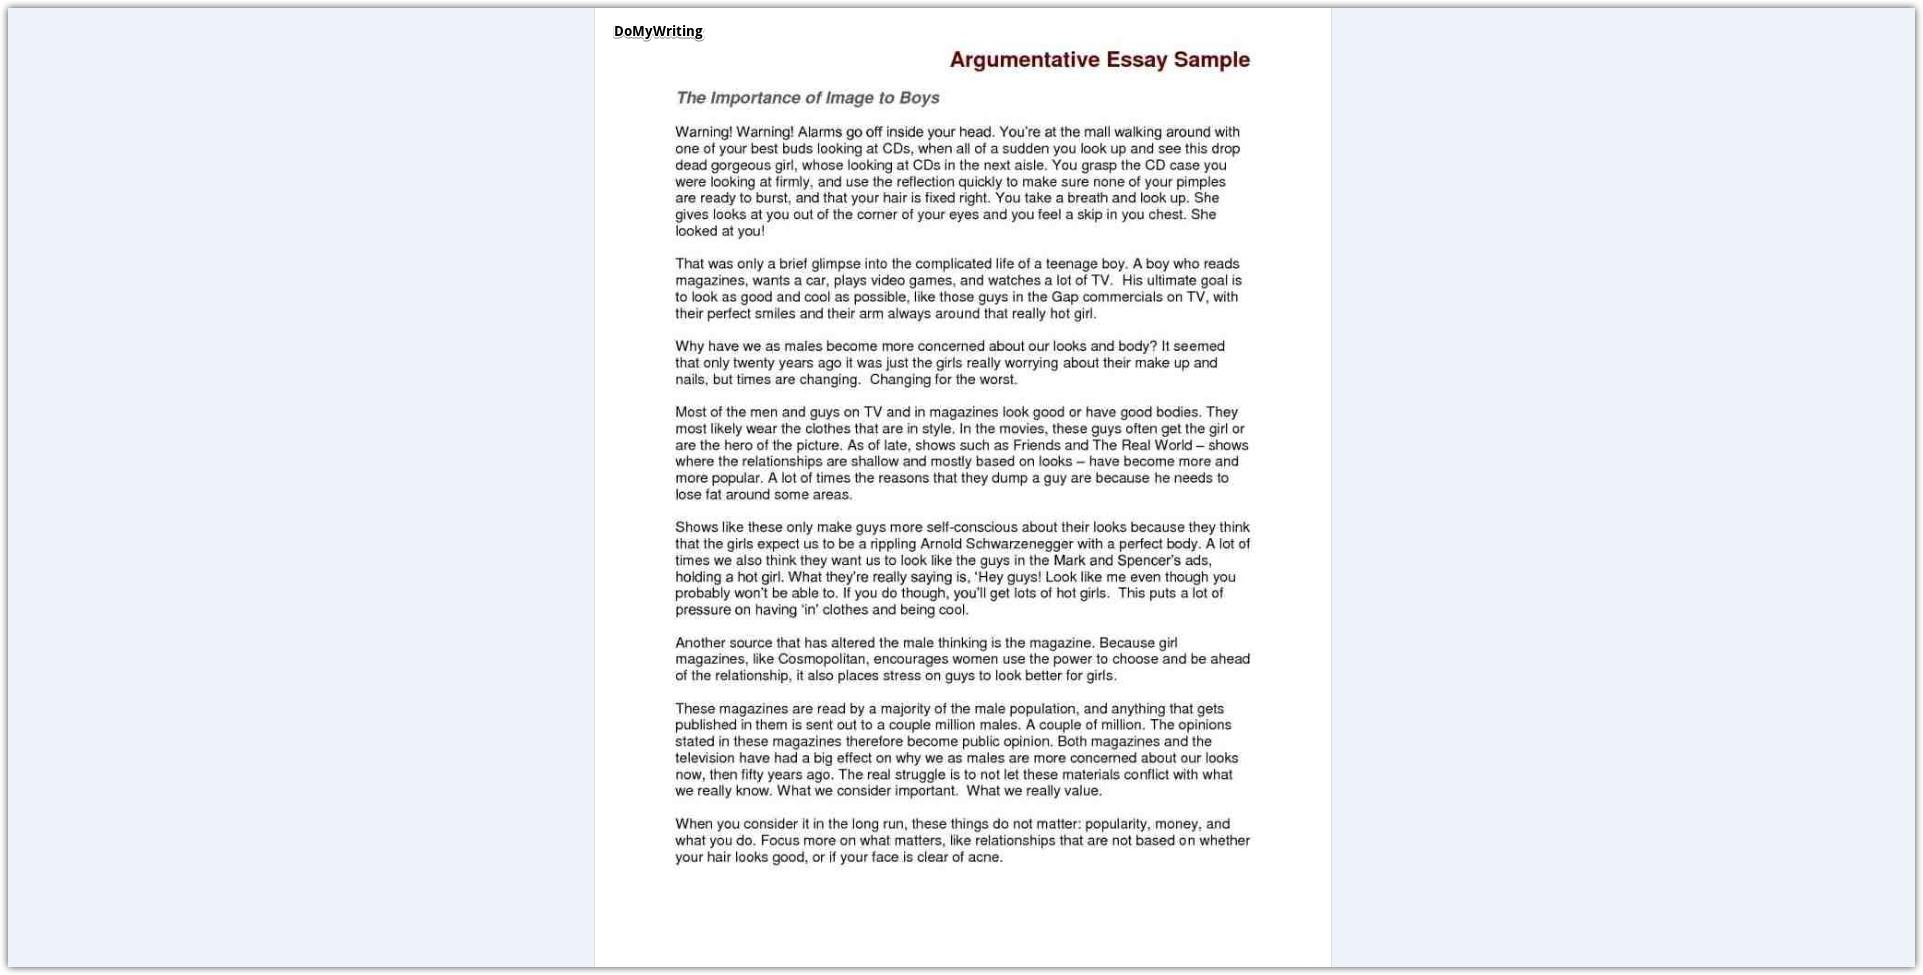 017 Argumentative Essay Sample Samples Excellent Examples For College Students Ielts Pdf Template Full